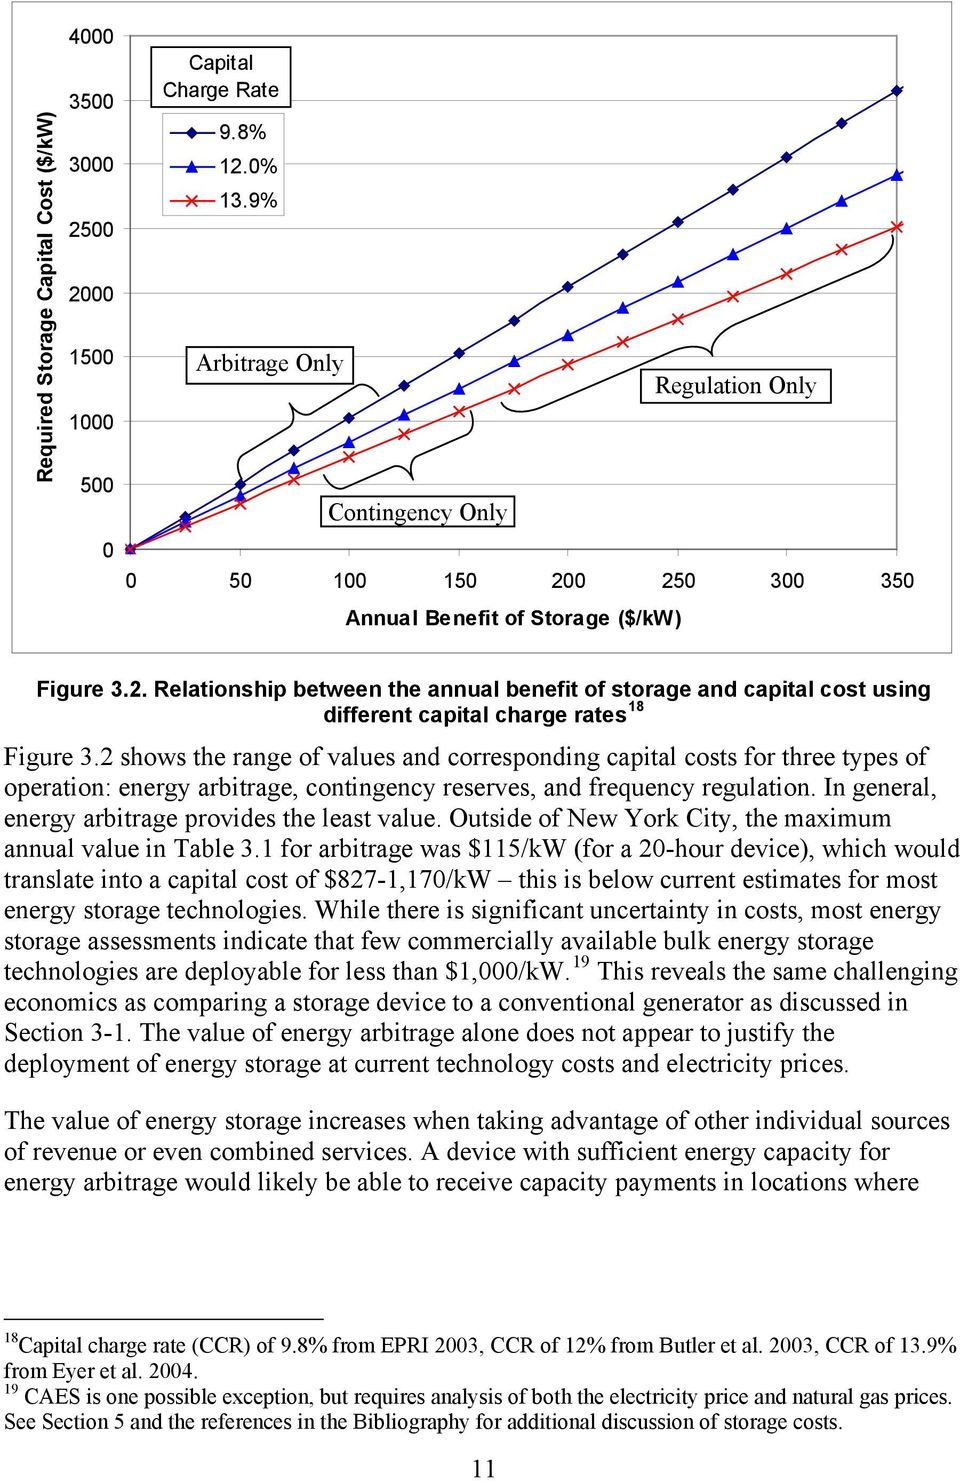 2 shows the range of values and corresponding capital costs for three types of operation: energy arbitrage, contingency reserves, and frequency regulation.